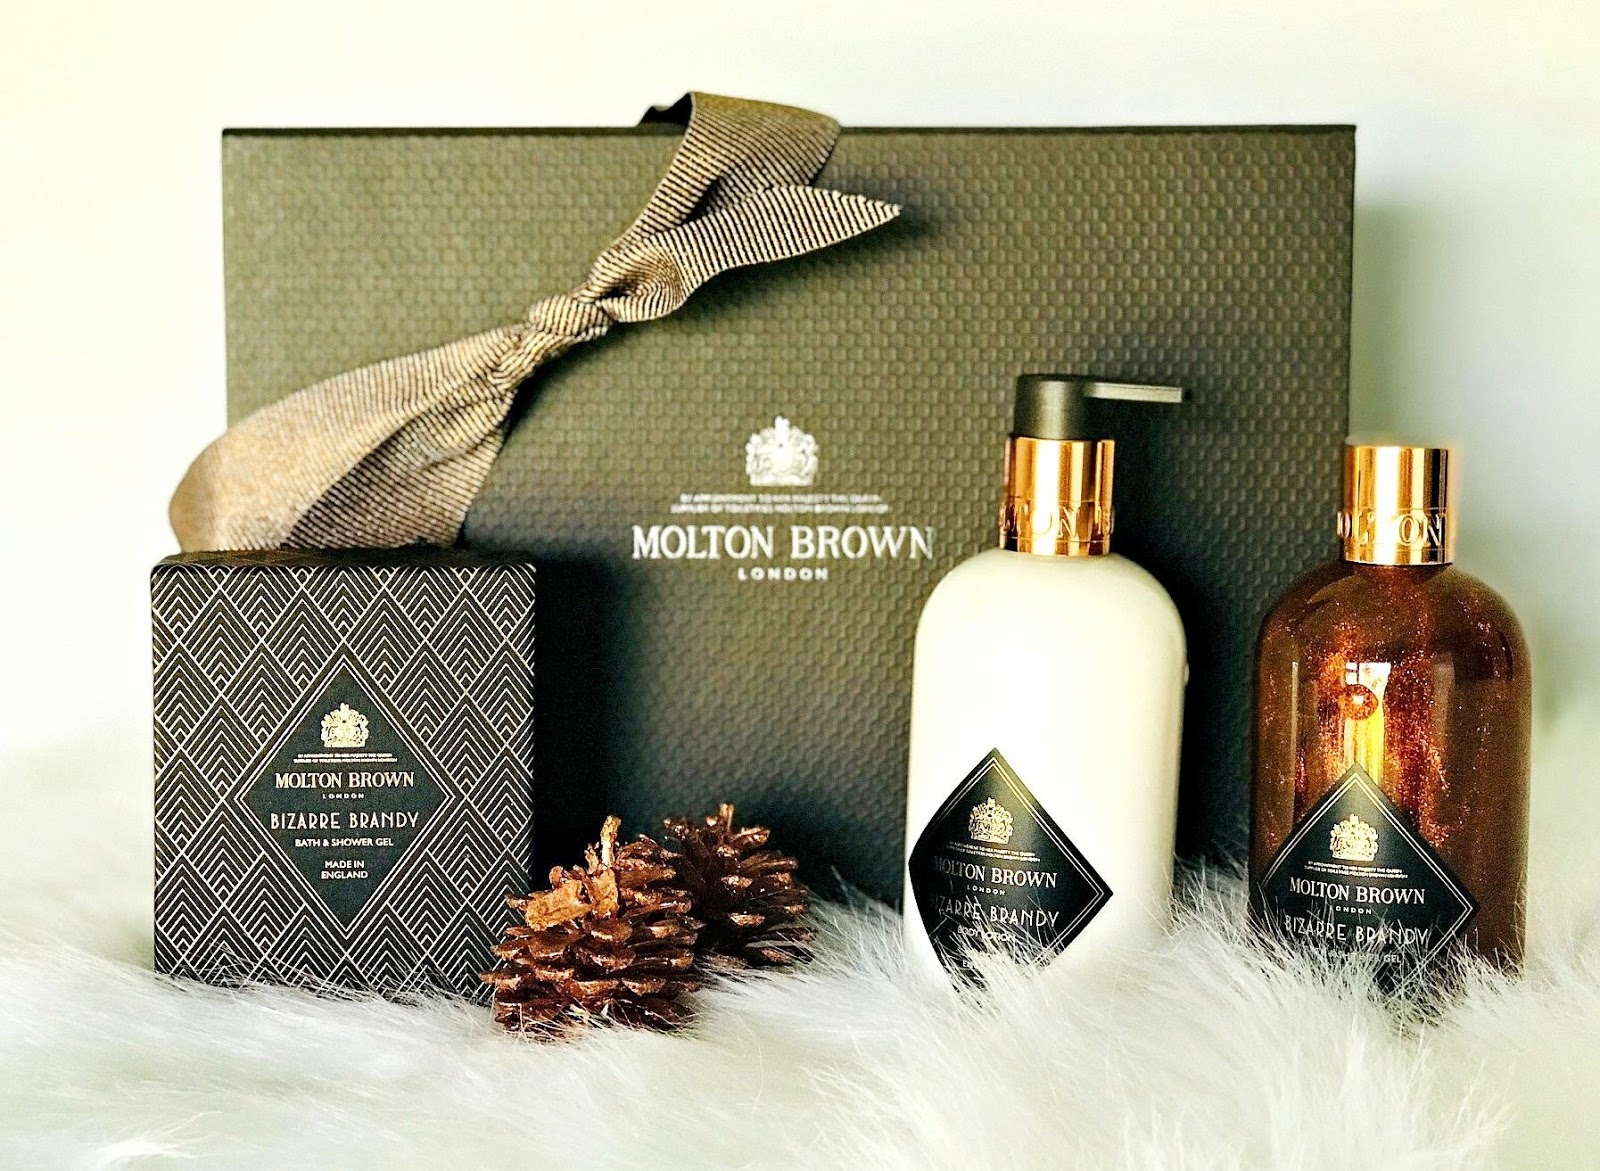 Molton Brown Bizarre Brandy Collection Review